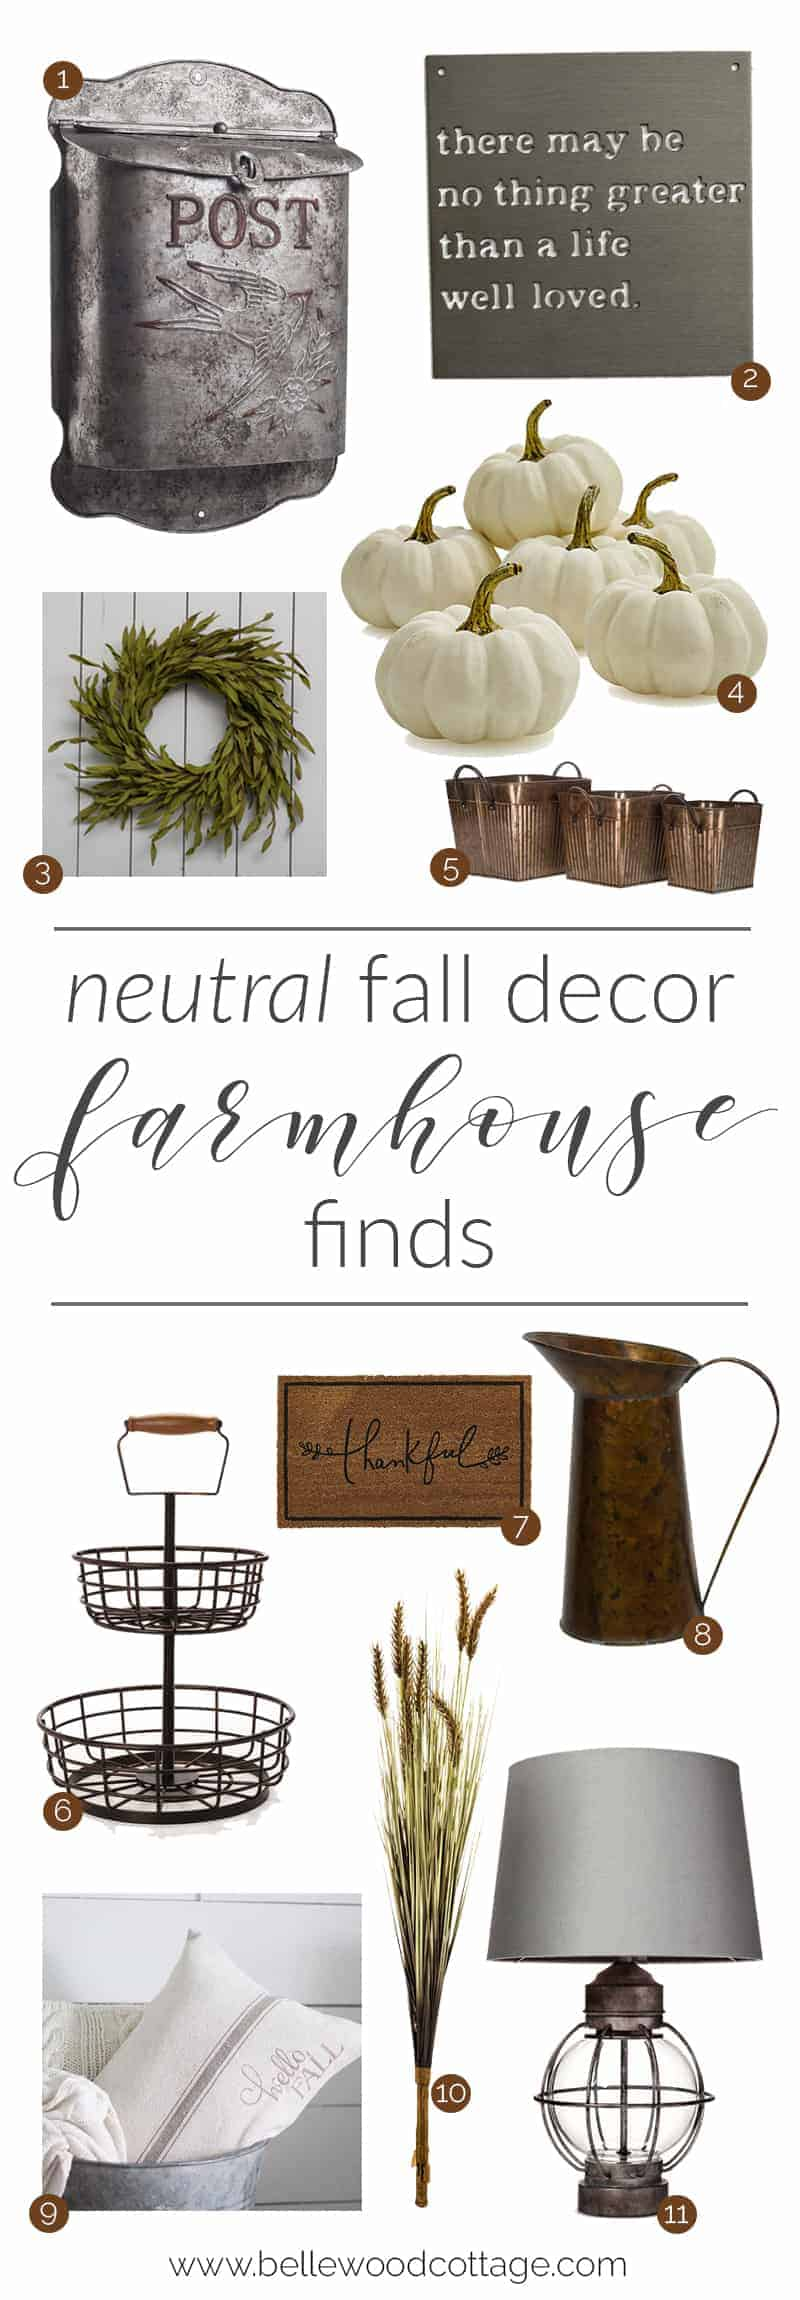 Neutral Fall Decor for the Farmhouse